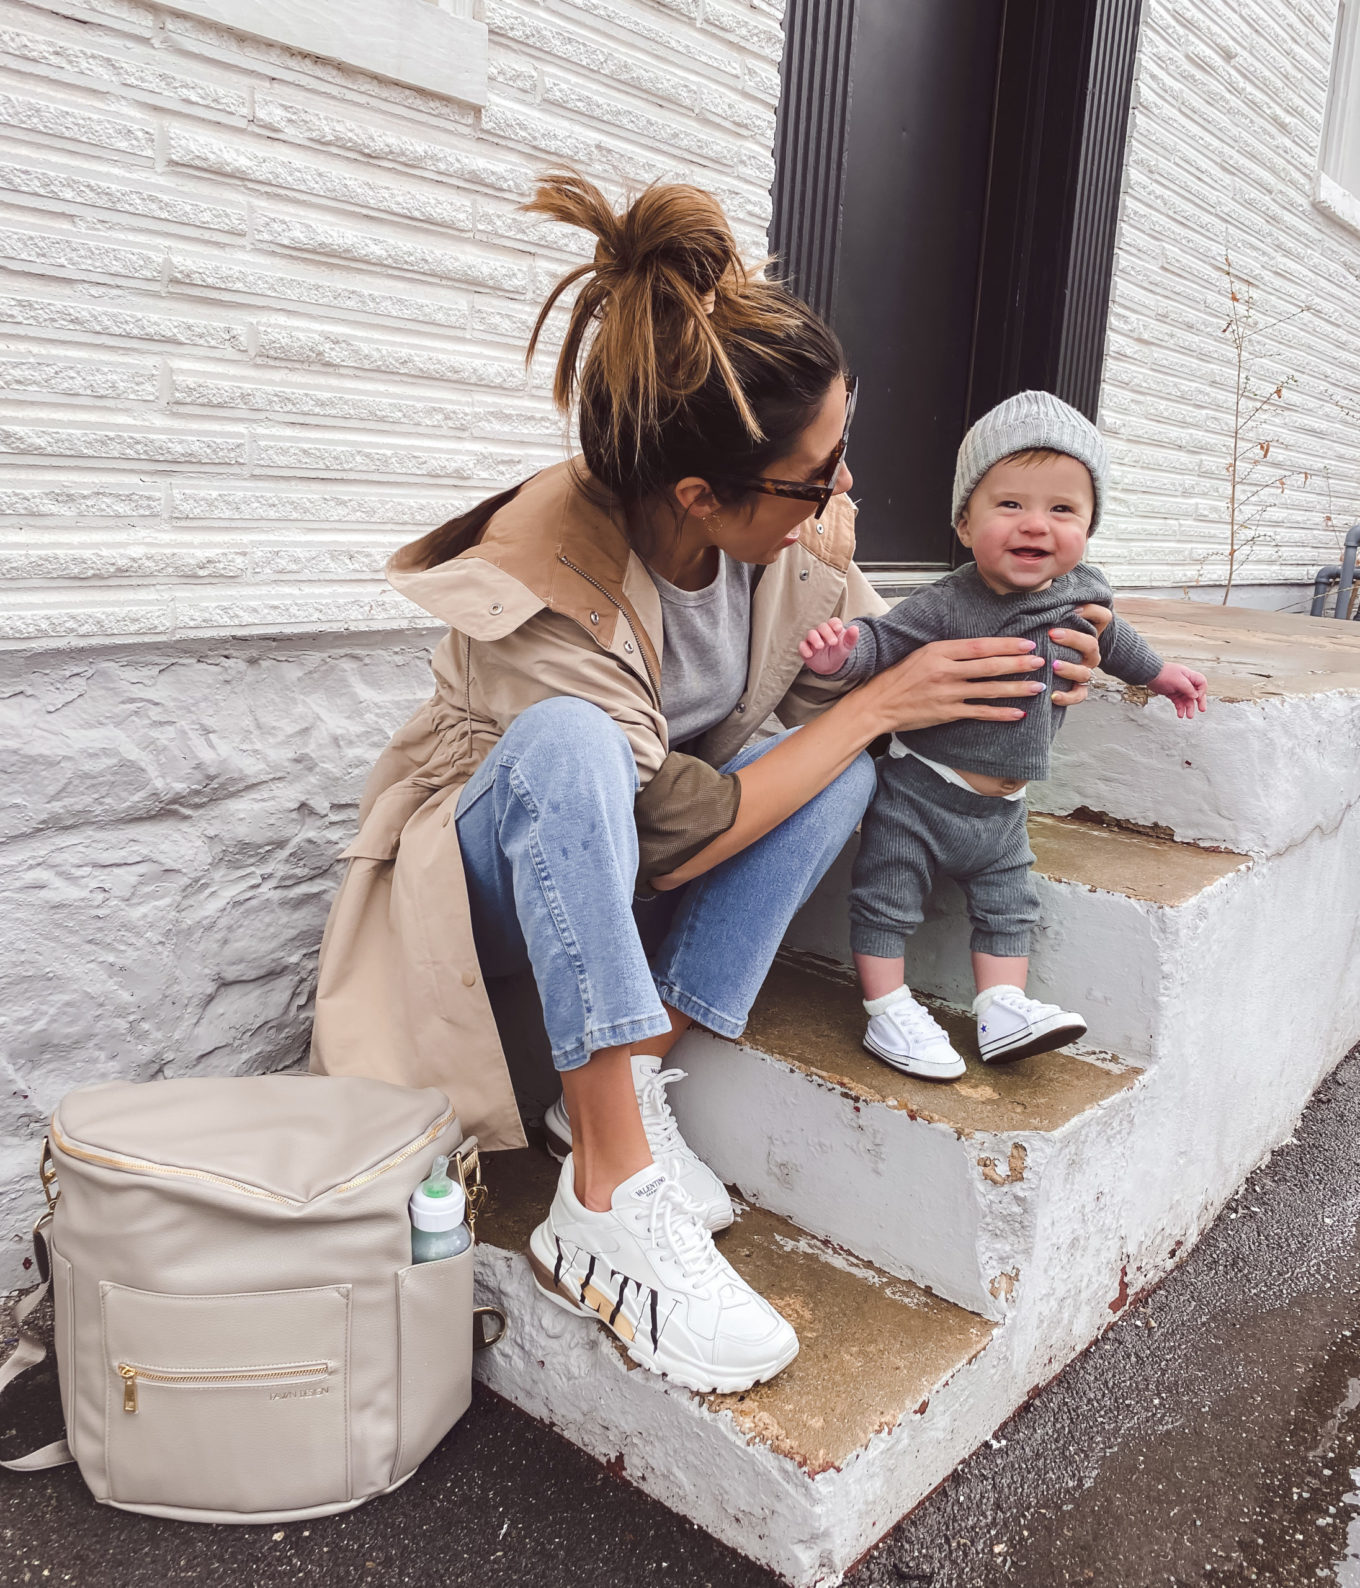 christine andrew and baby with travel bag and diaper bag